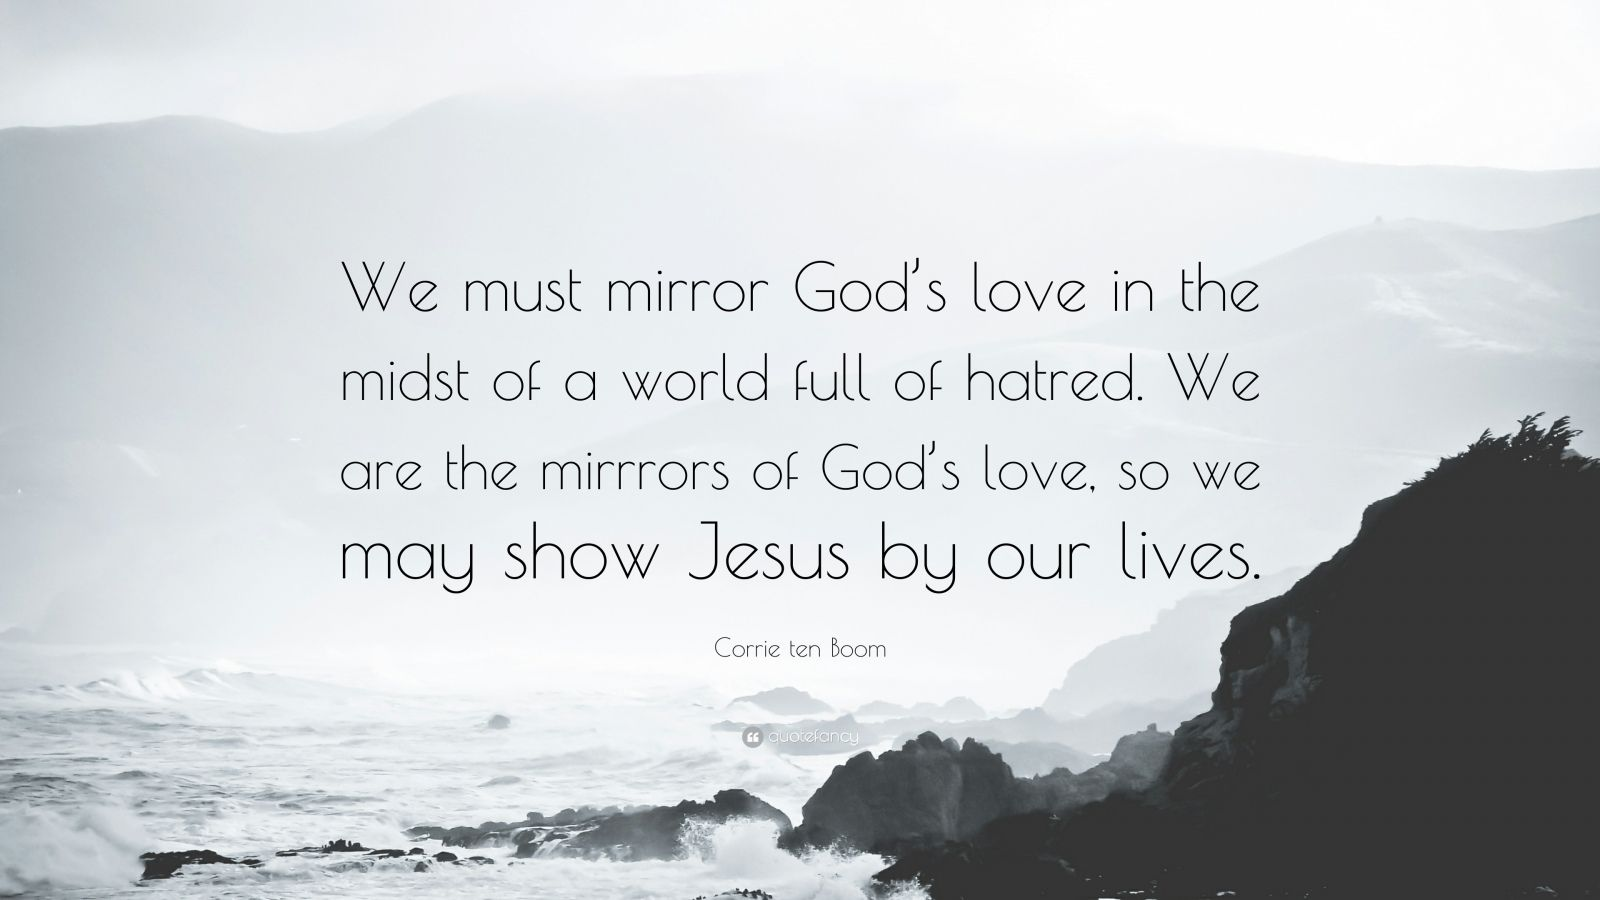 155893-Corrie-ten-Boom-Quote-We-must-mirror-God-s-love-in-the-midst-of-a.jpg